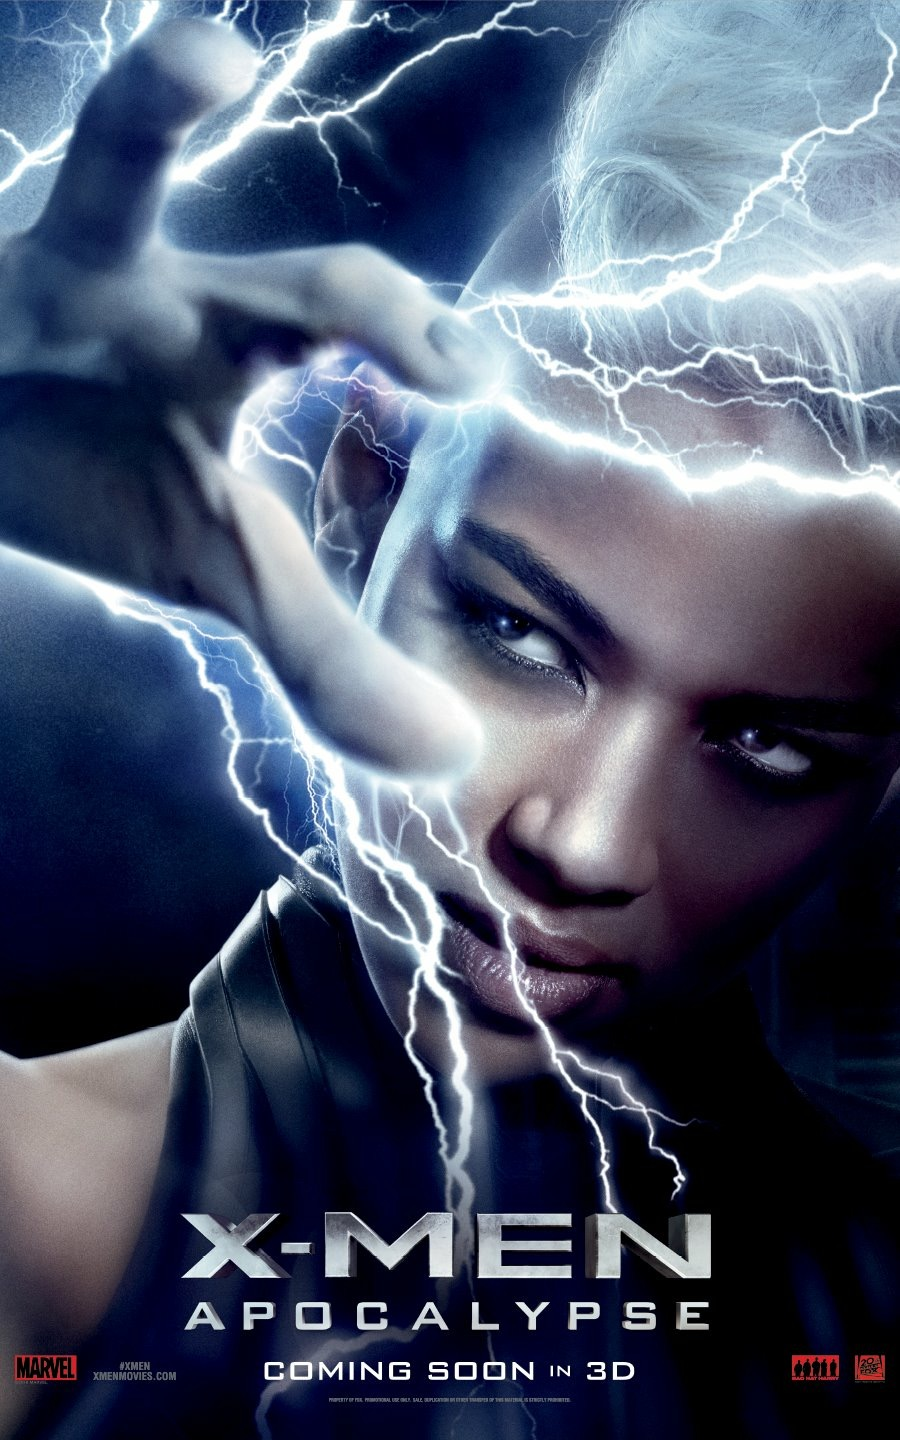 X Men Apocalypse Character Posters Debut The Mary Sue